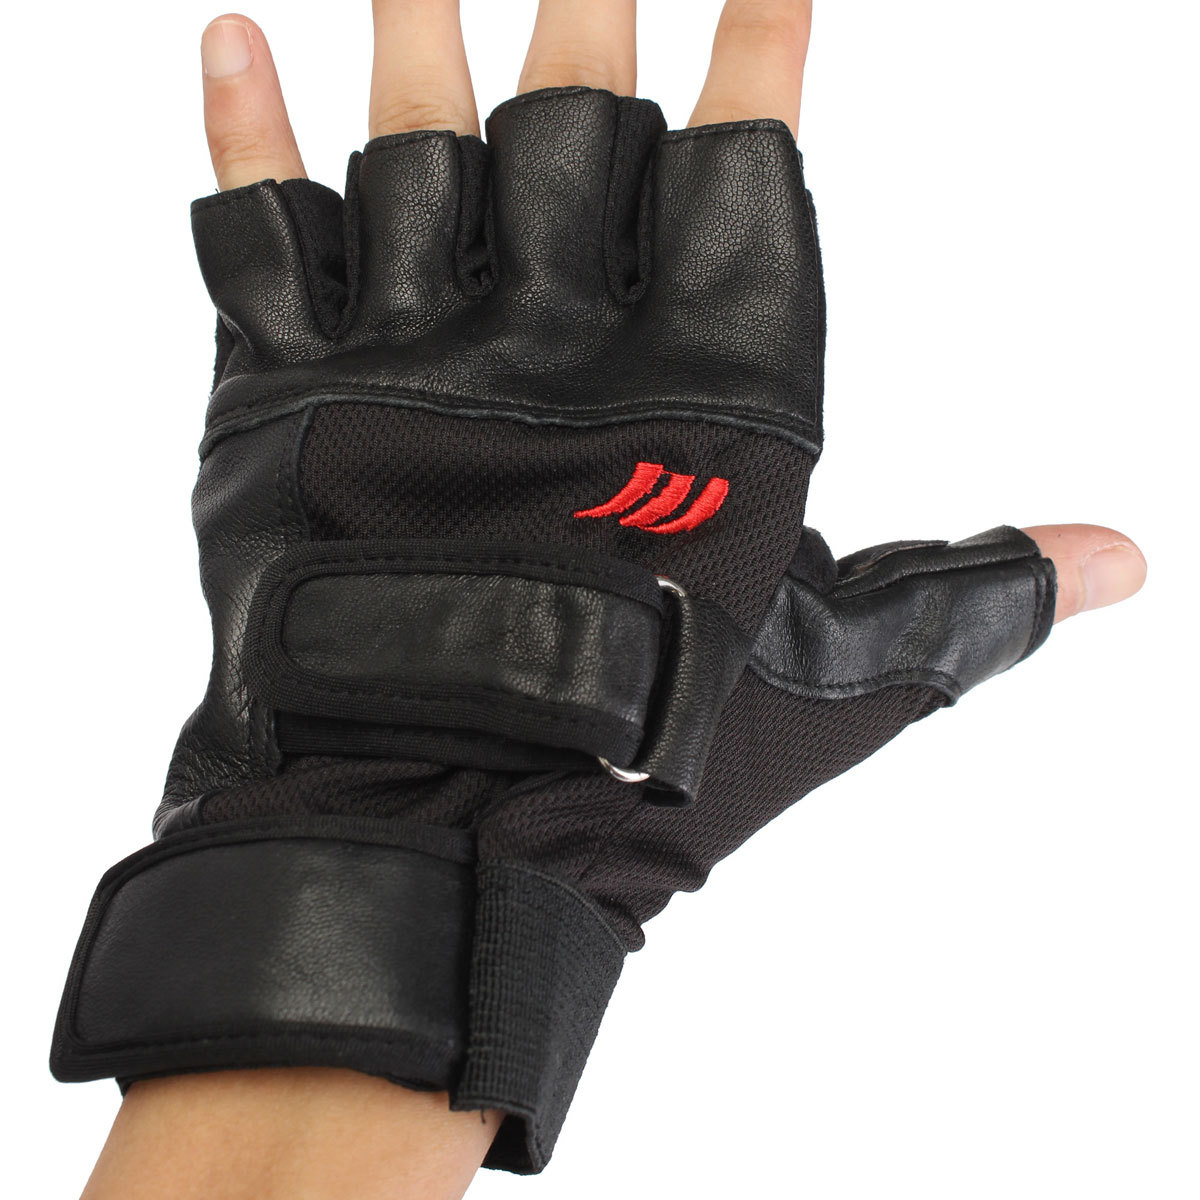 Weight Lifting Gloves Leather Fitness Gym Training Workout: Men Weight Lifting Leather Gloves Sports Training Gym